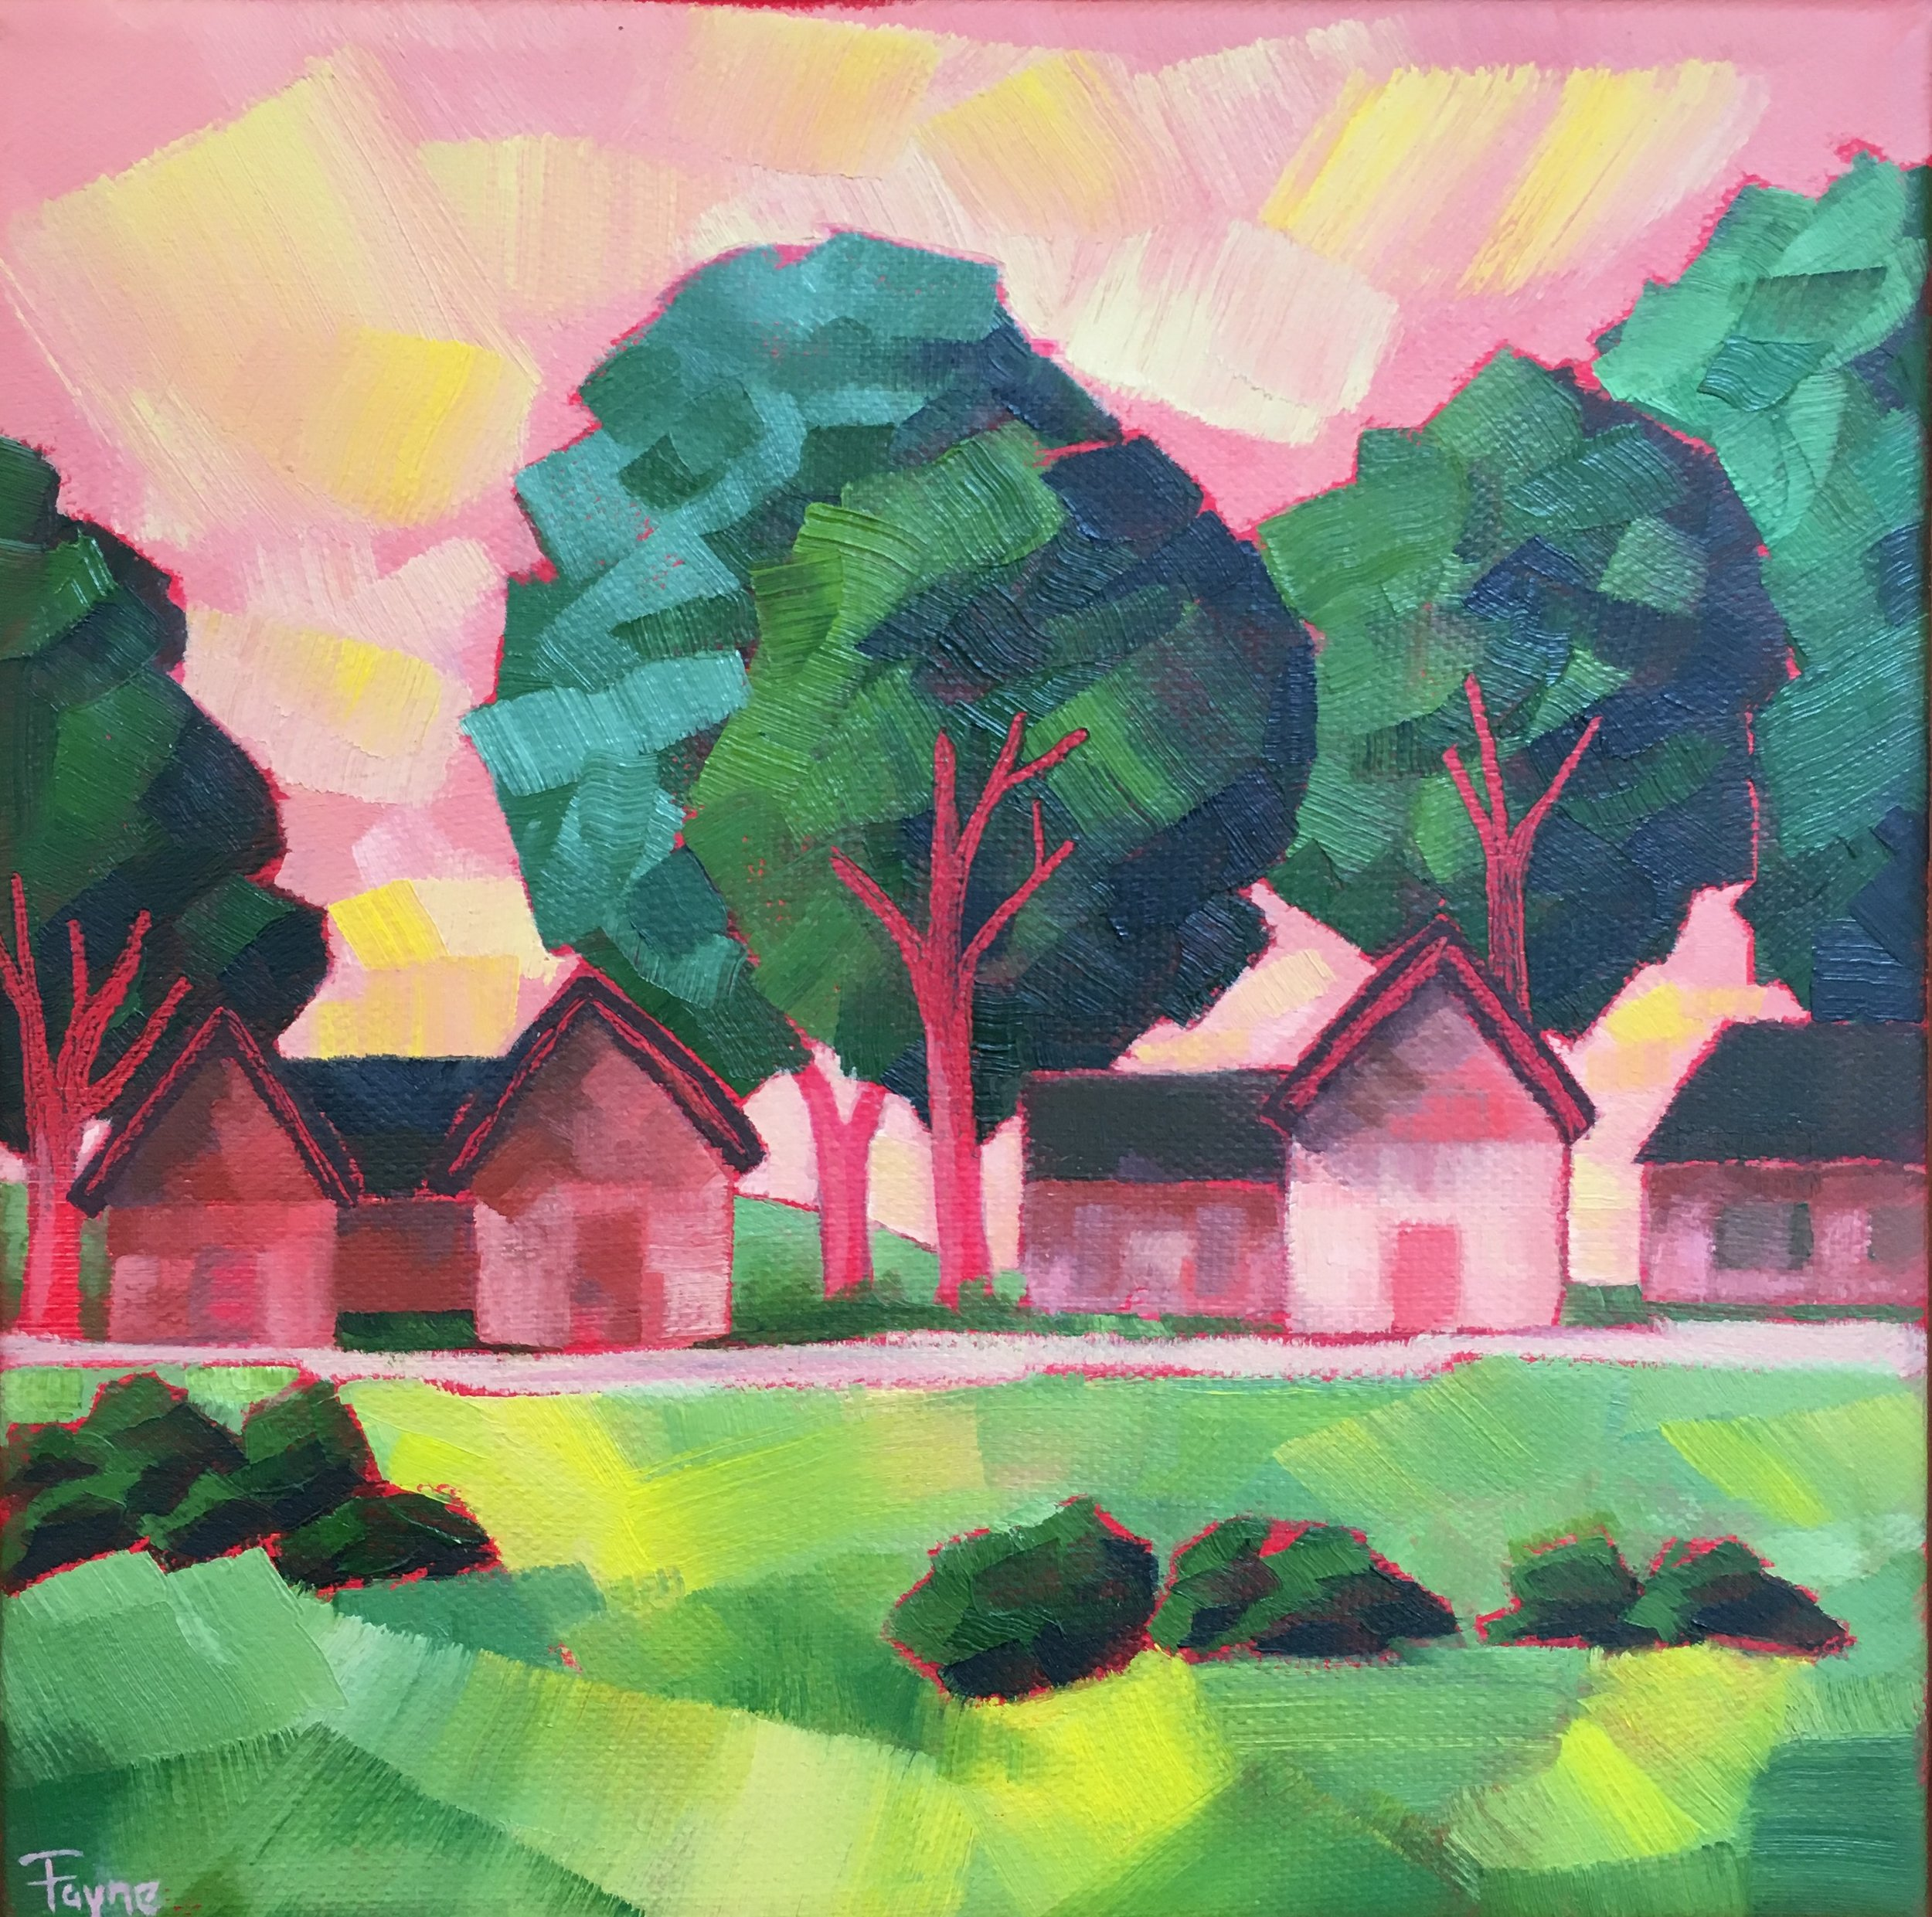 HONORABLE MENTION  - Fayne Muldoon | Summer Retreat | Oil on Canvas